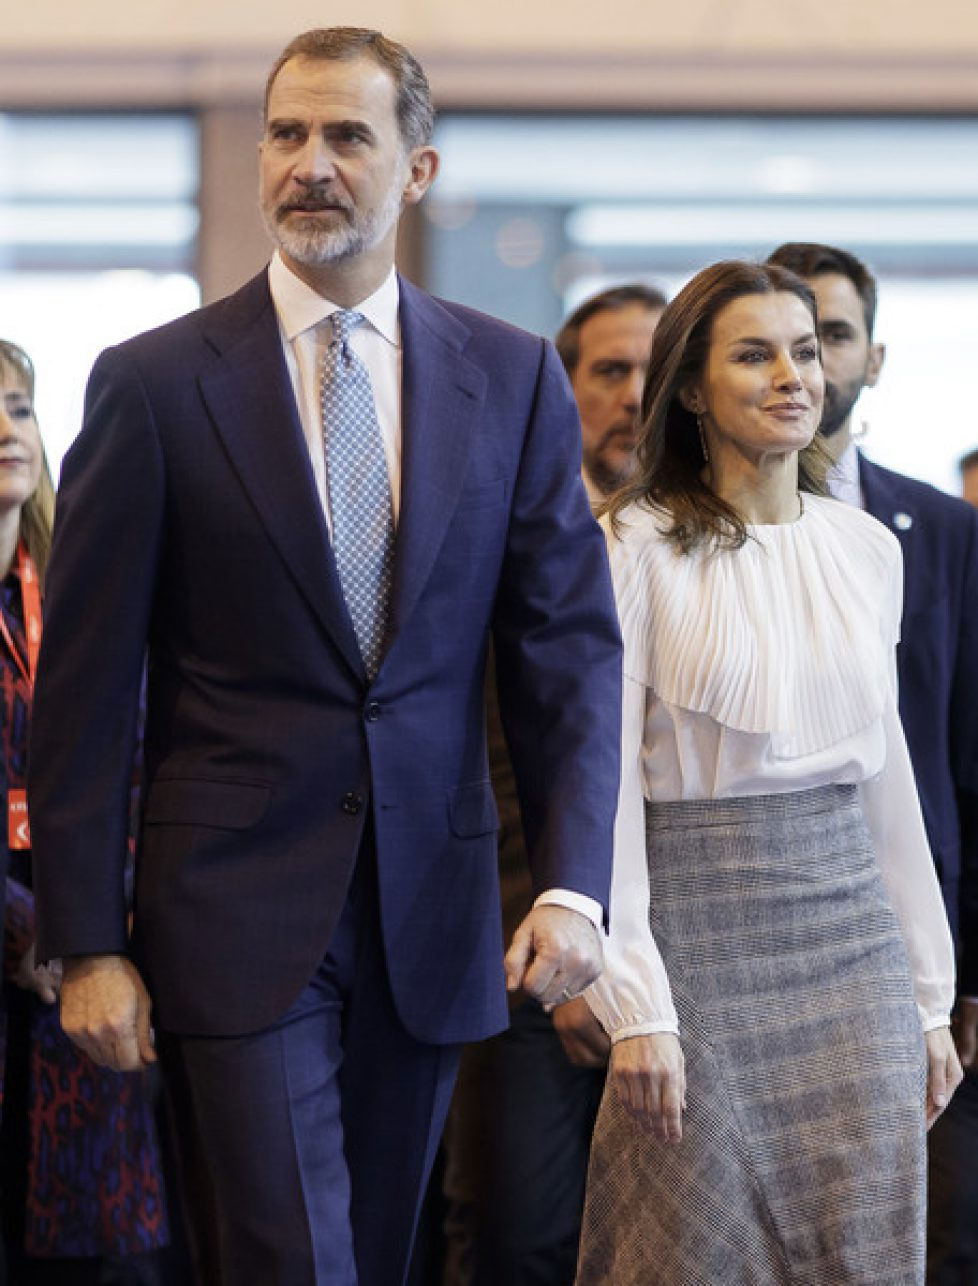 Spanish+Royals+Attend+FITUR+0YpH9iJ29R_l